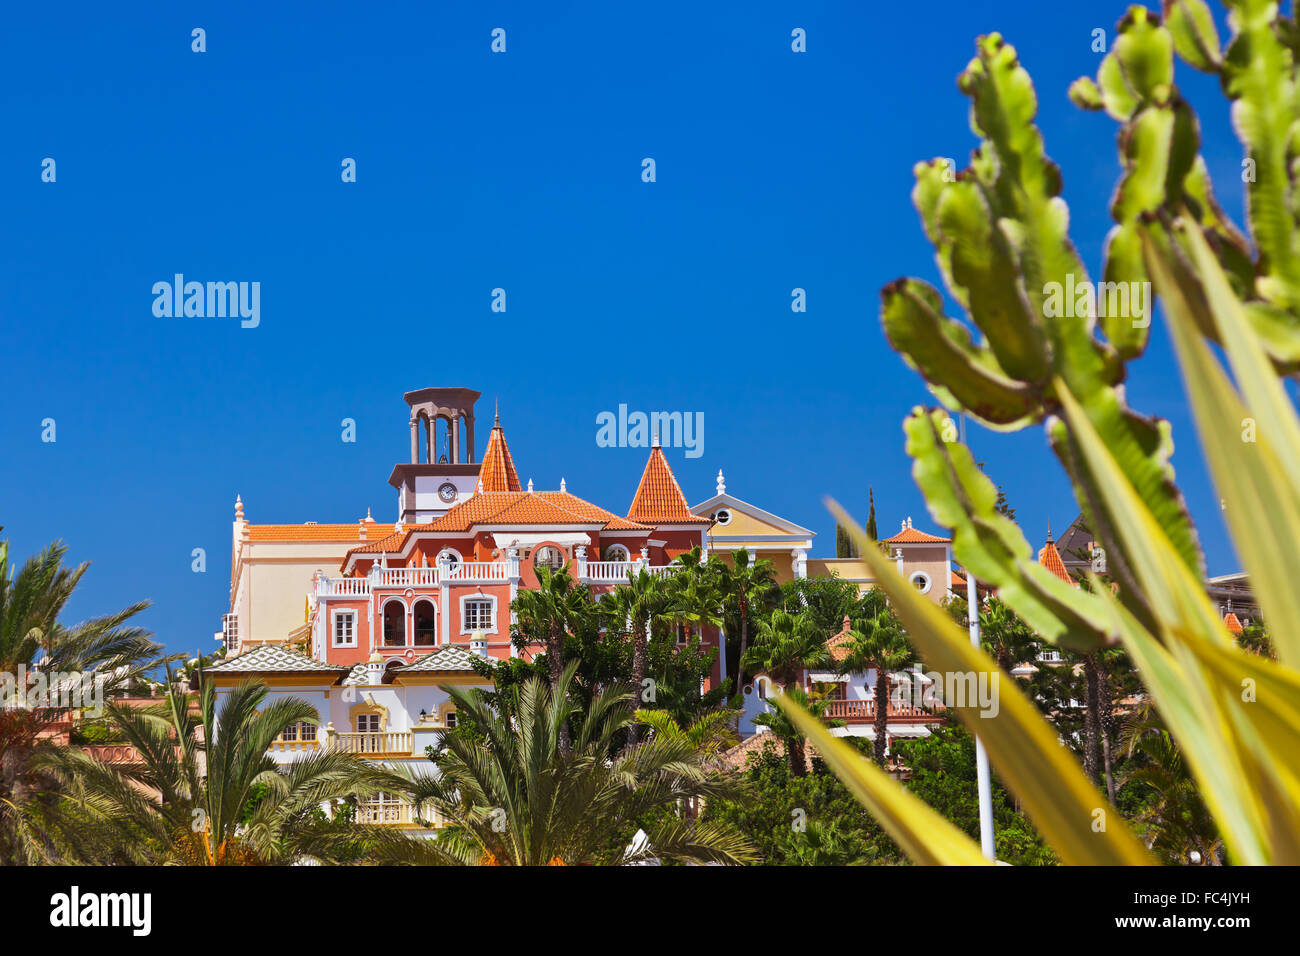 Architecture at Tenerife island - Canaries - Stock Image